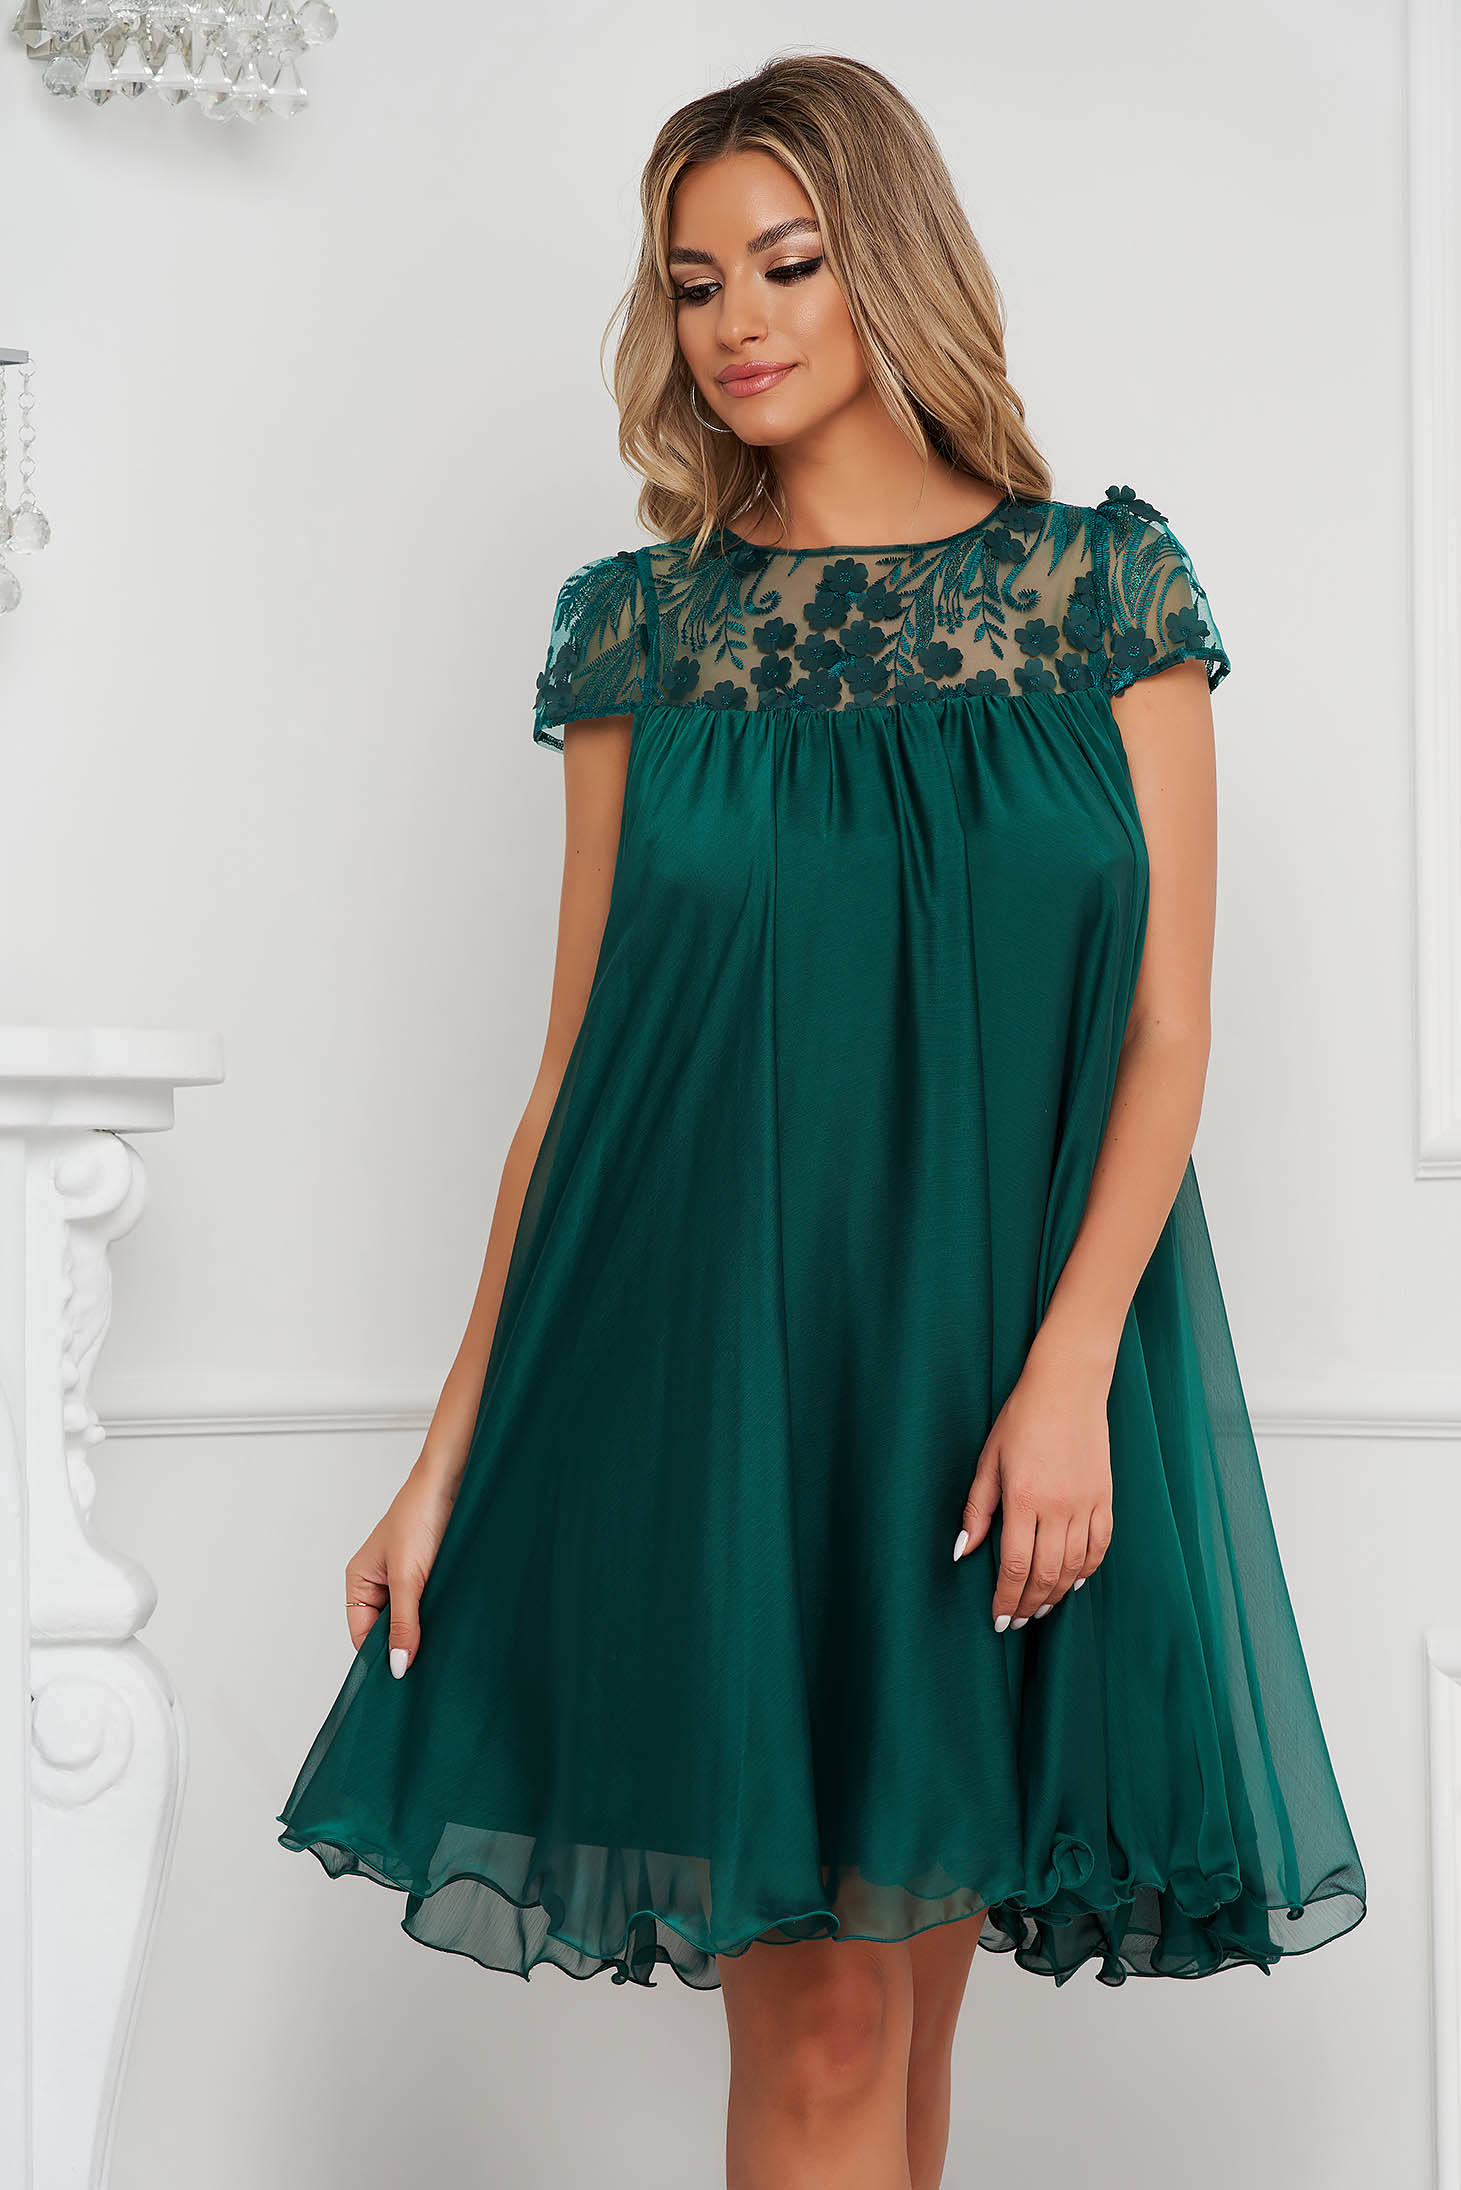 Dress from veil fabric occasional with lace details loose fit short cut